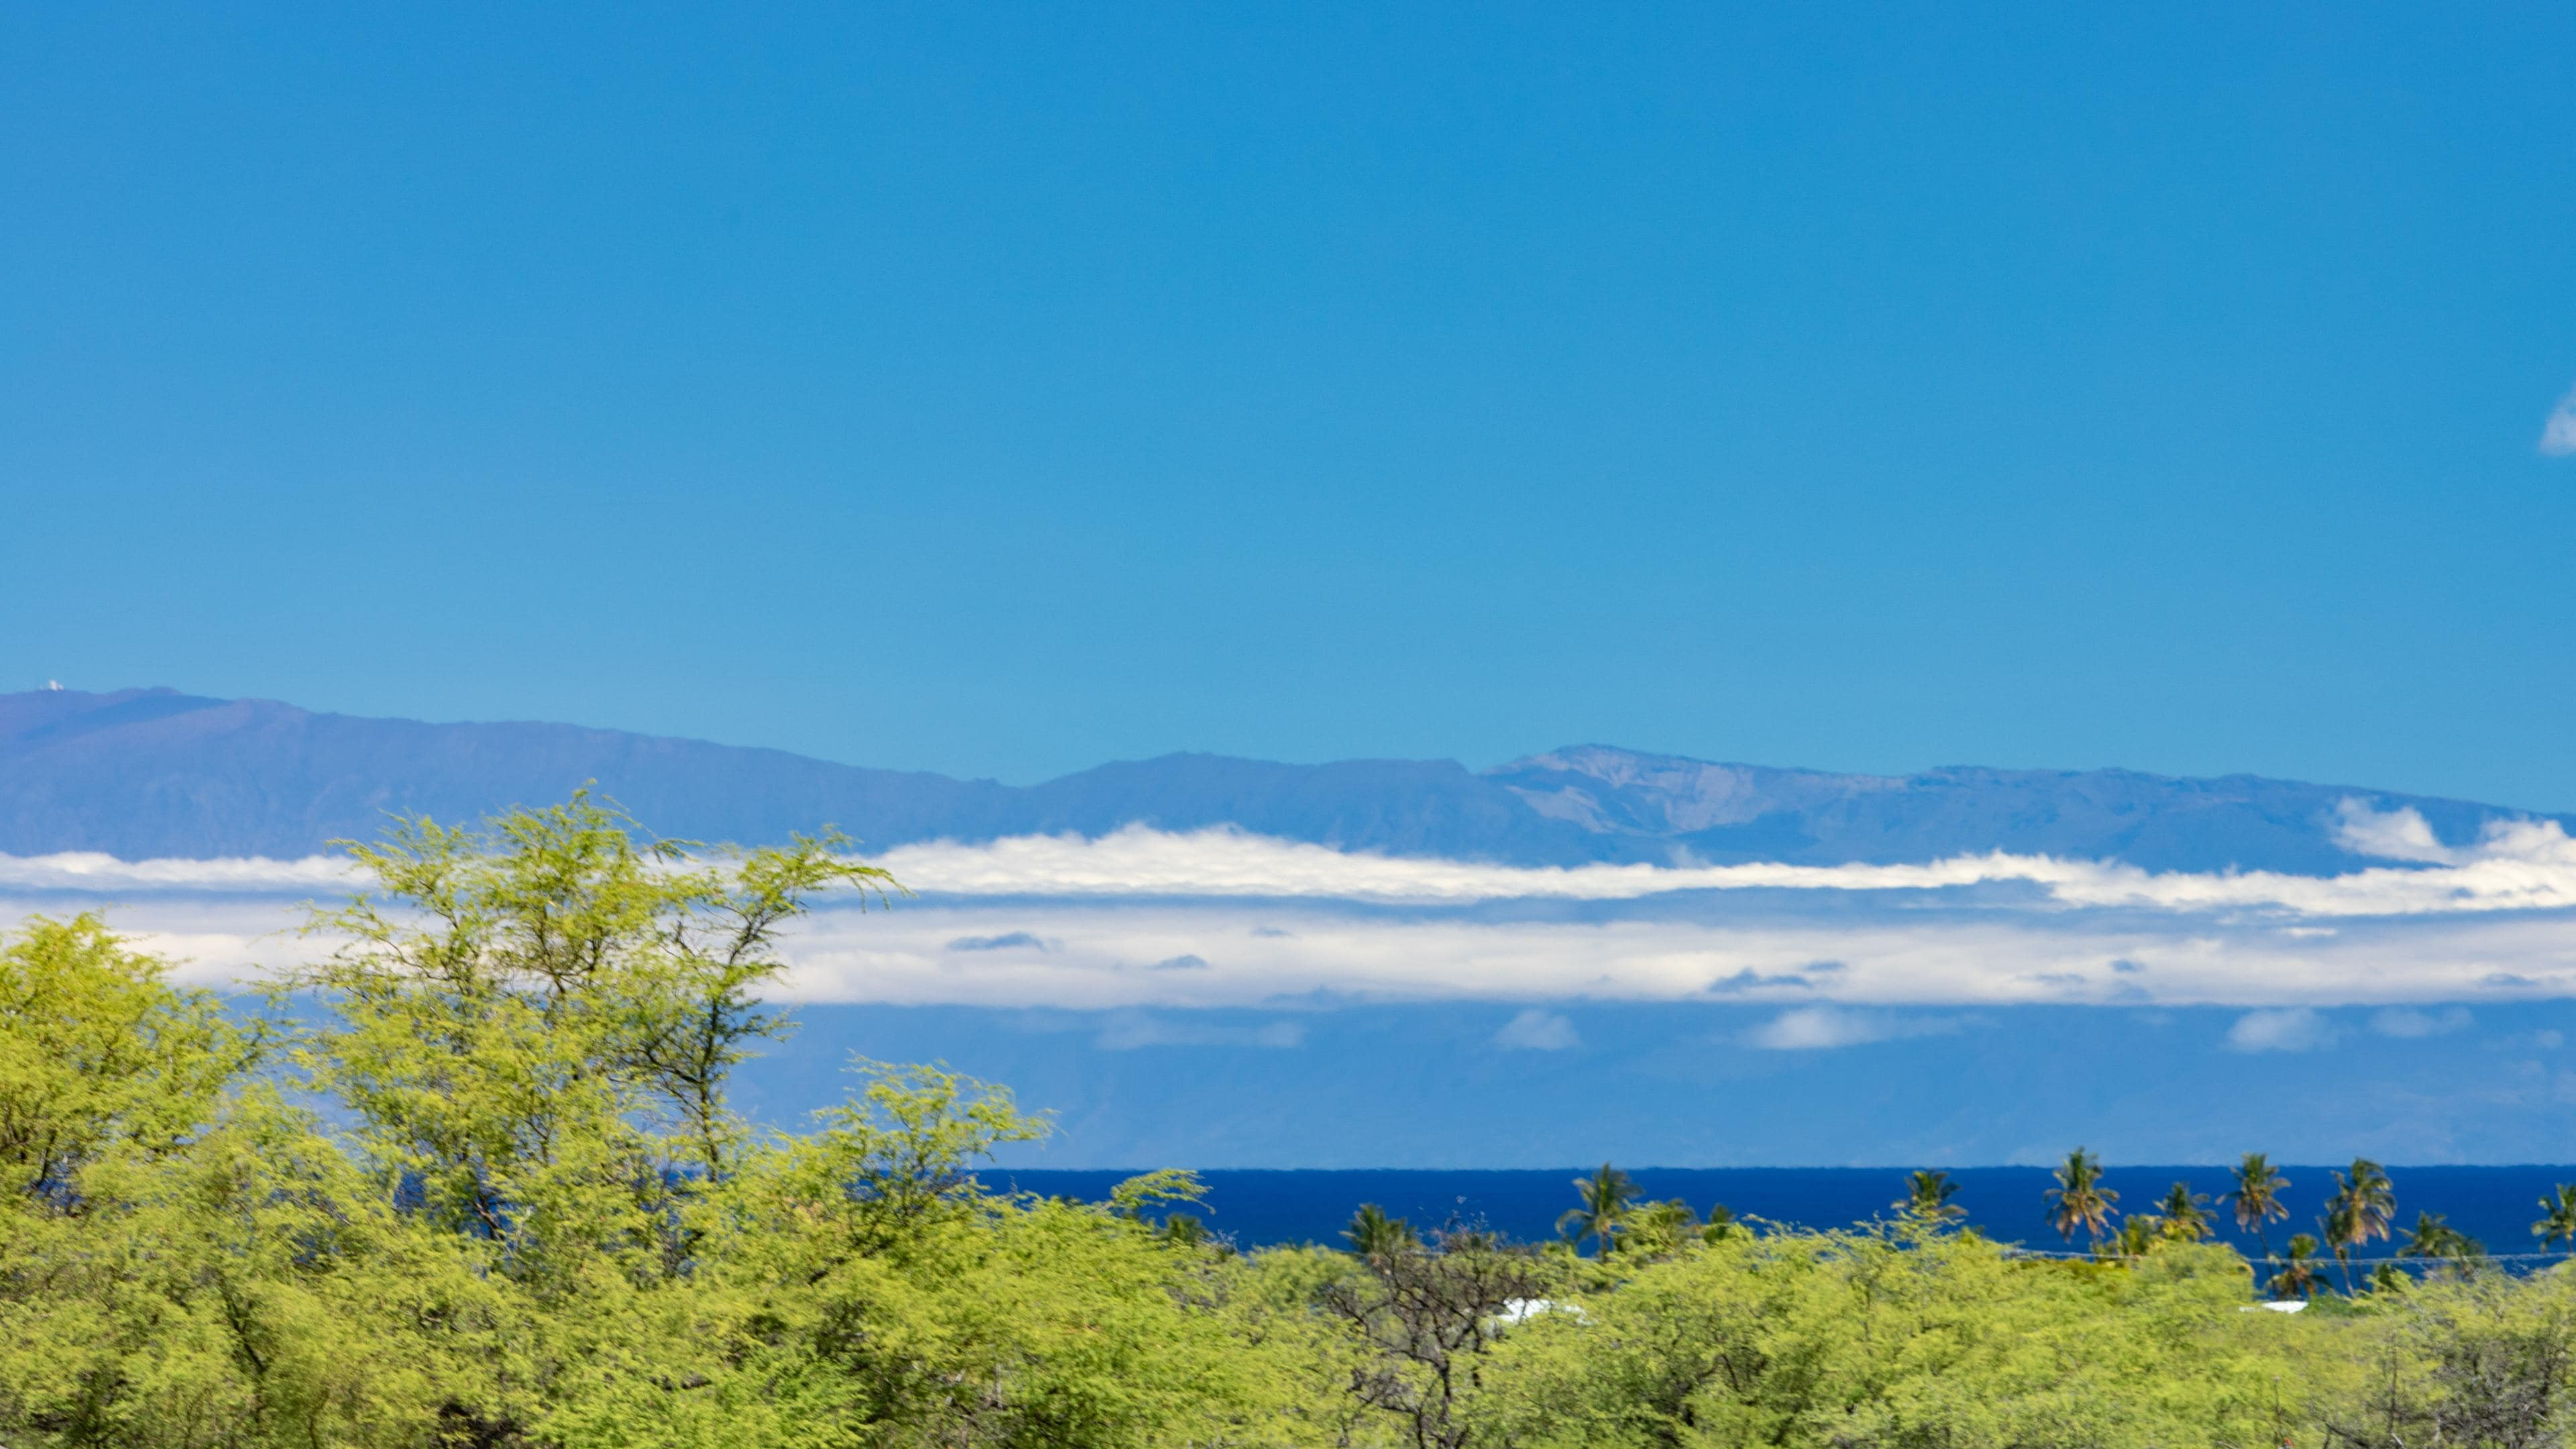 Views of Haleakala (Maui) from lanai